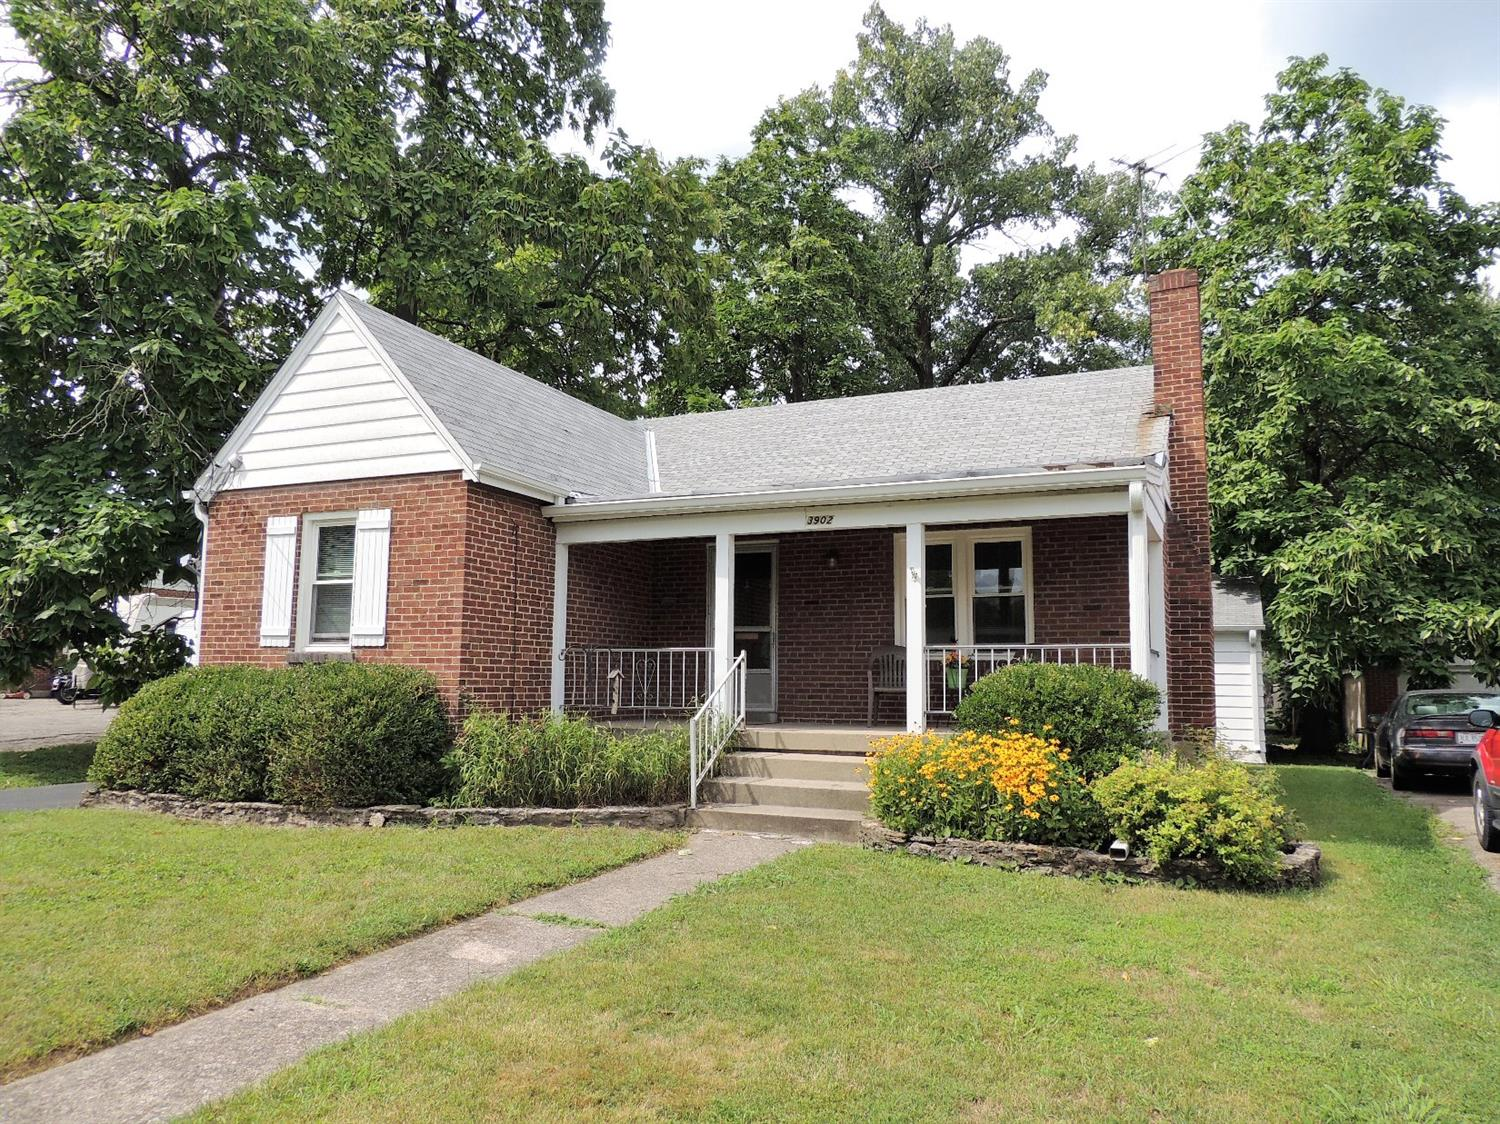 Property for sale at 3902 Lansdowne Avenue, Deer Park,  OH 45236